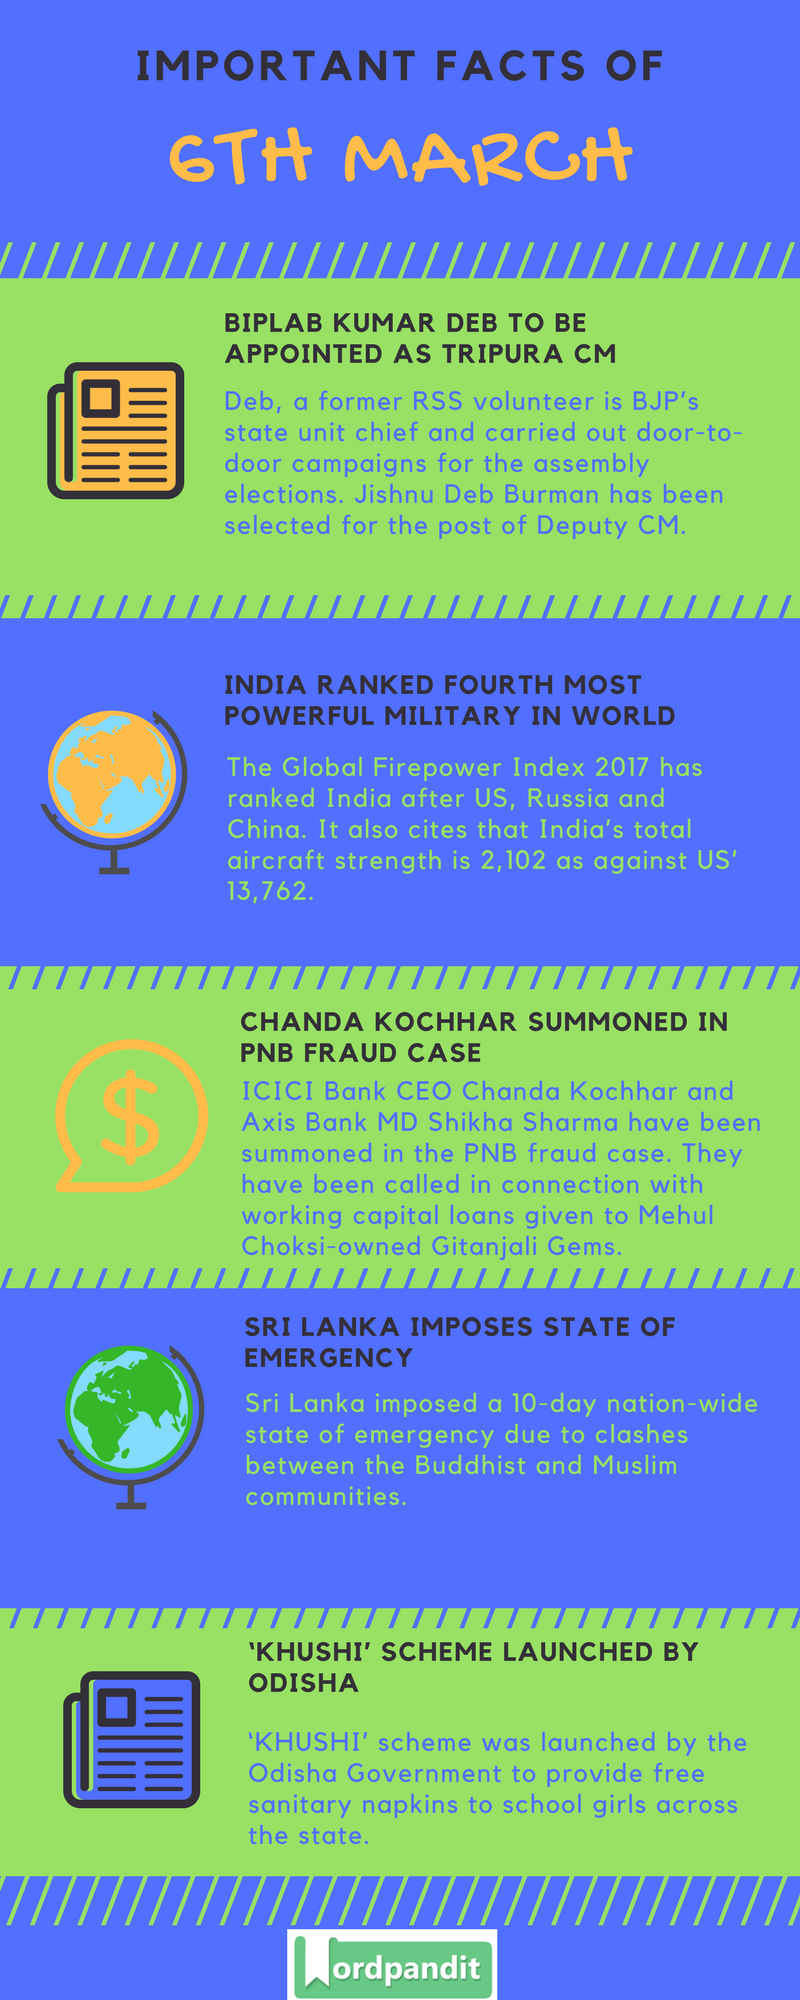 Daily Current Affairs 6 March 2018 Current Affairs Quiz March 6 2018 Current Affairs Infographic